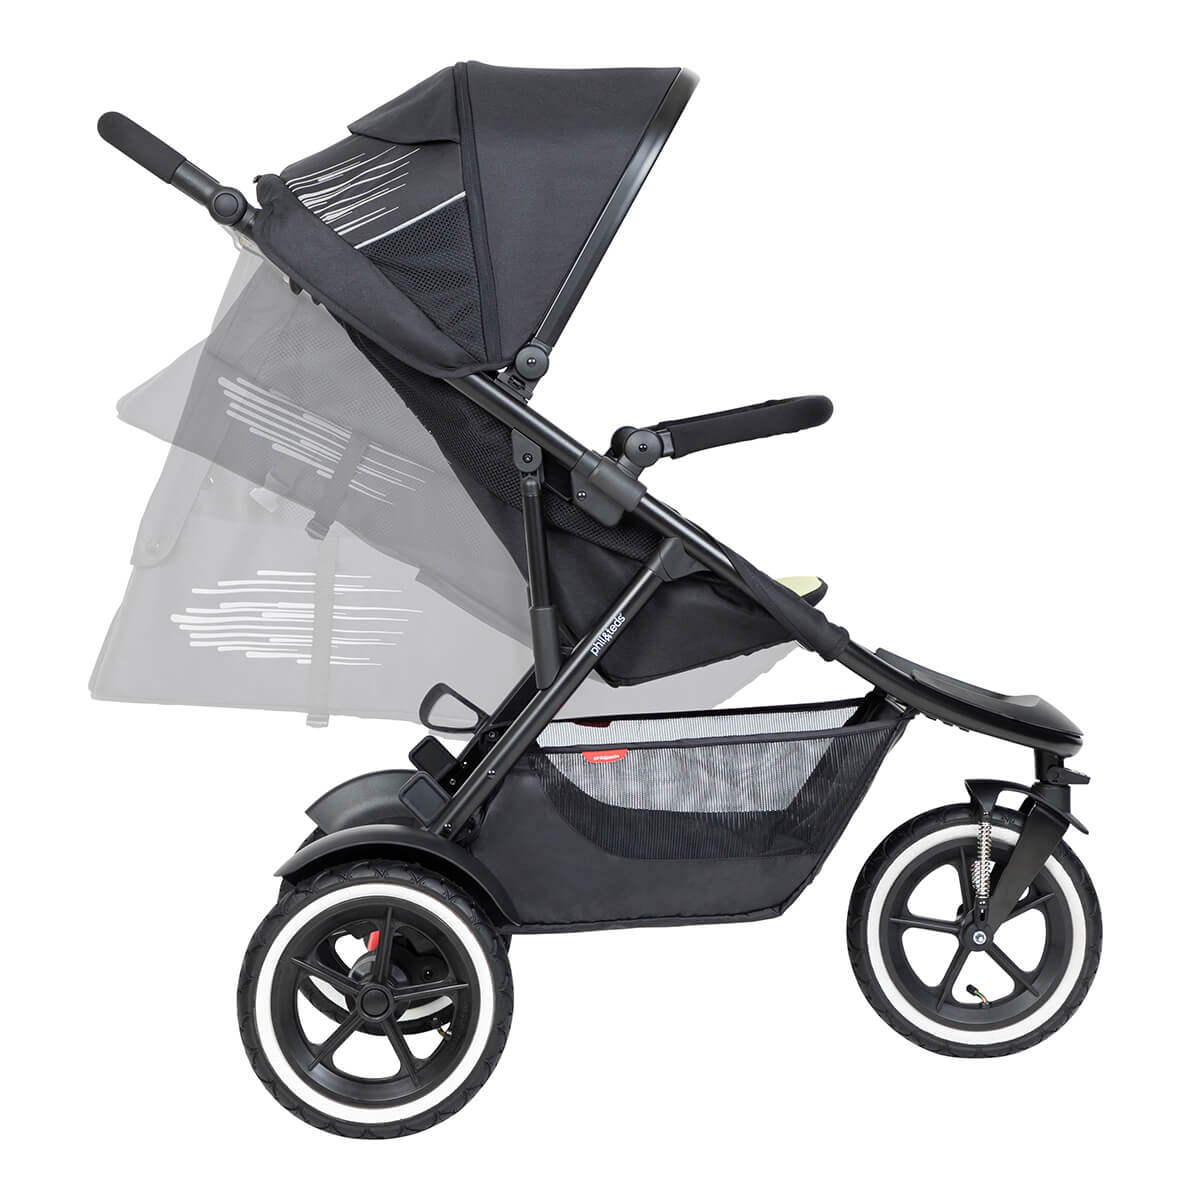 https://cdn.accentuate.io/4509527539800/19272668184664/philteds-sport-buggy-can-recline-in-multiple-angles-including-full-recline-for-newborn-baby-v1626484359170.jpg?1200x1200